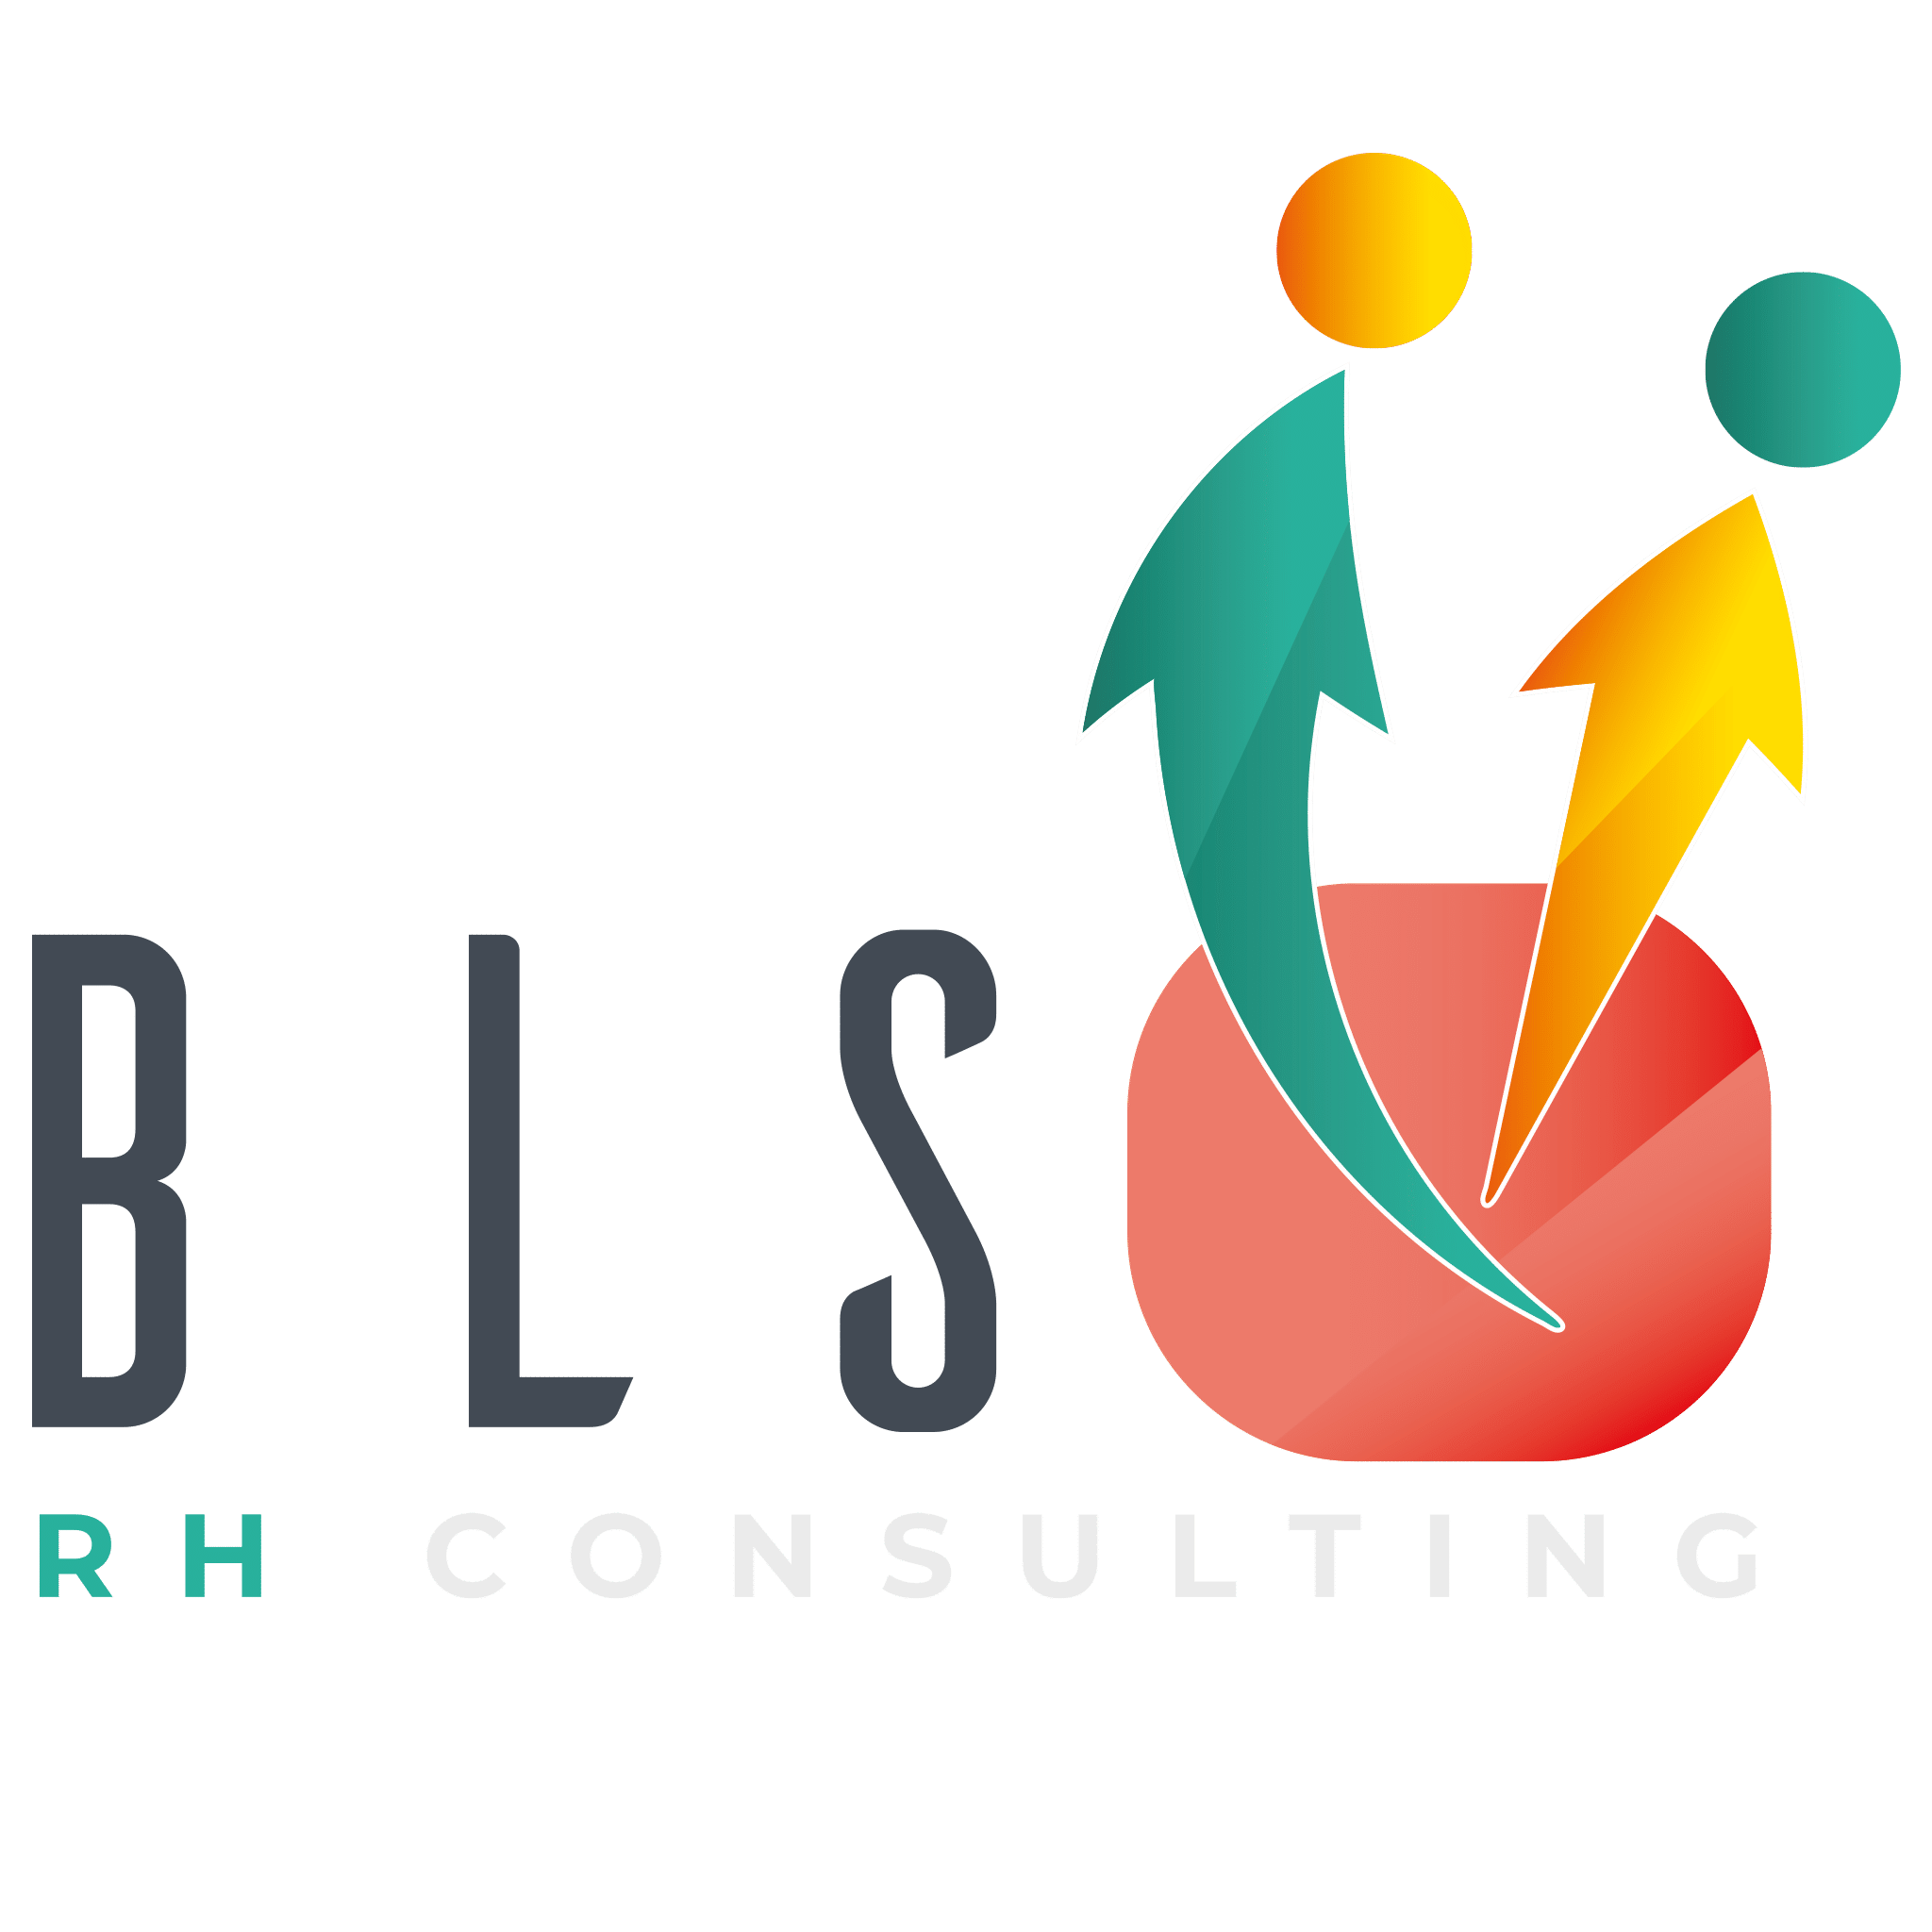 BLS RH Consulting